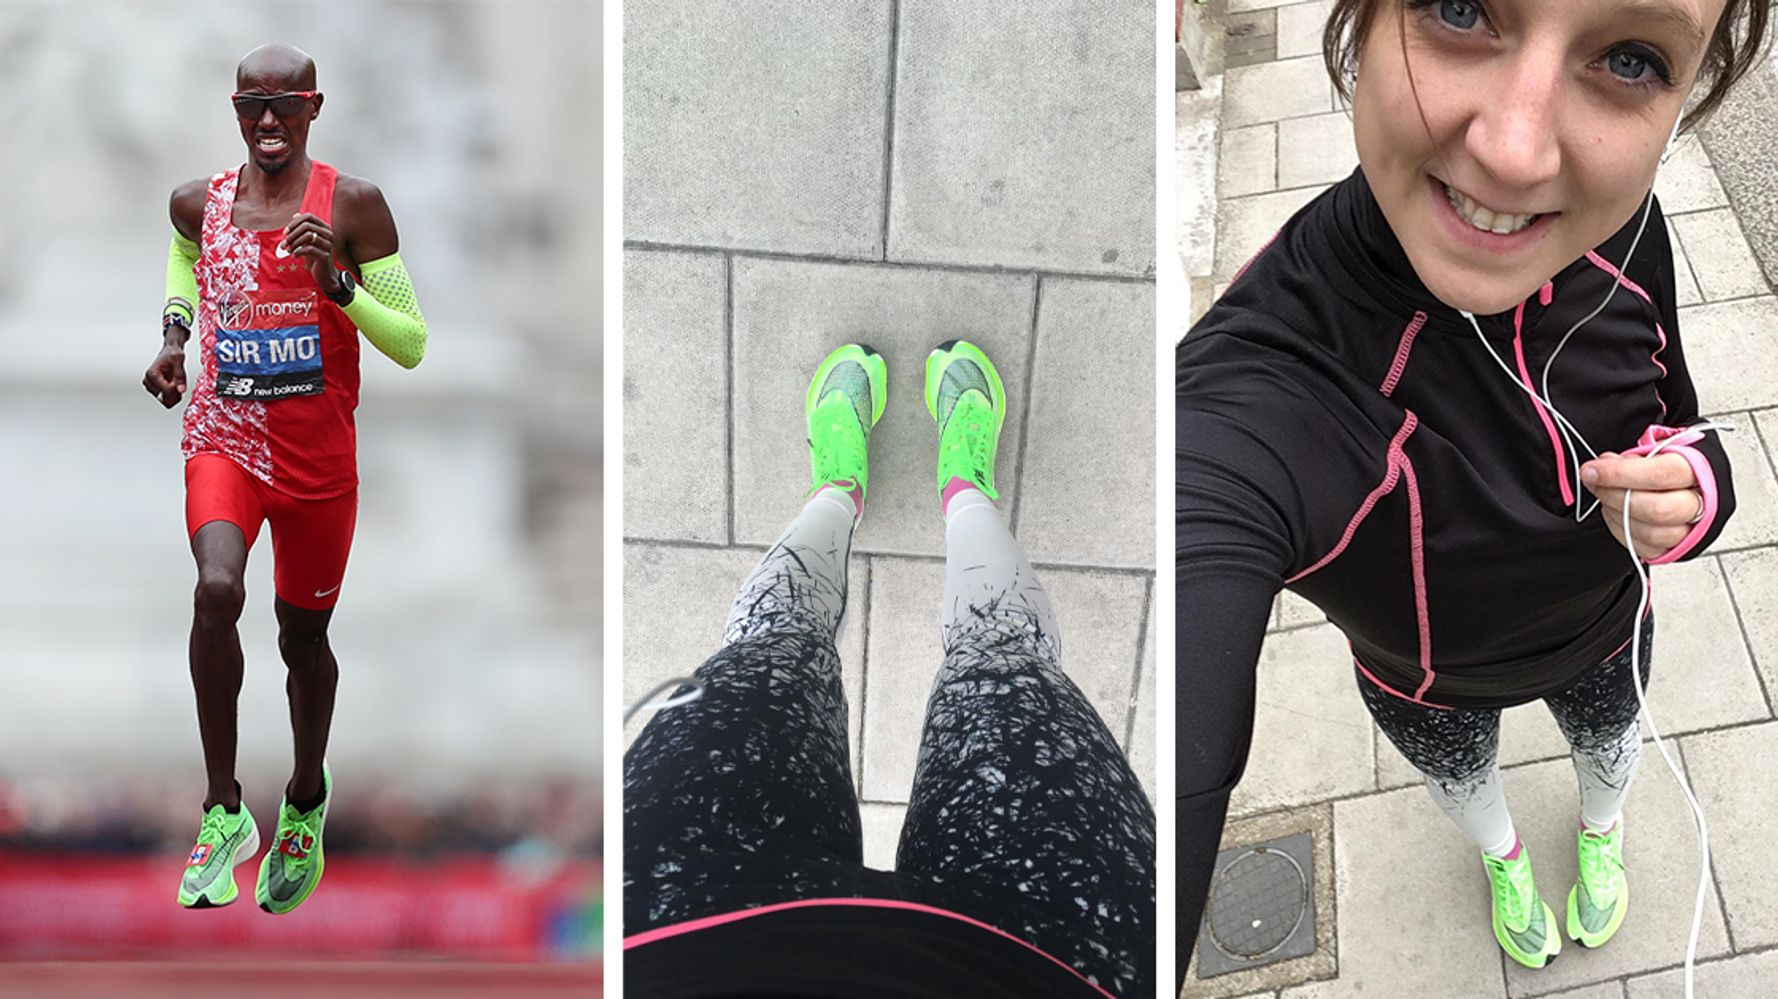 Do Nike's New Shoes Give Runners an Unfair Advantage? The